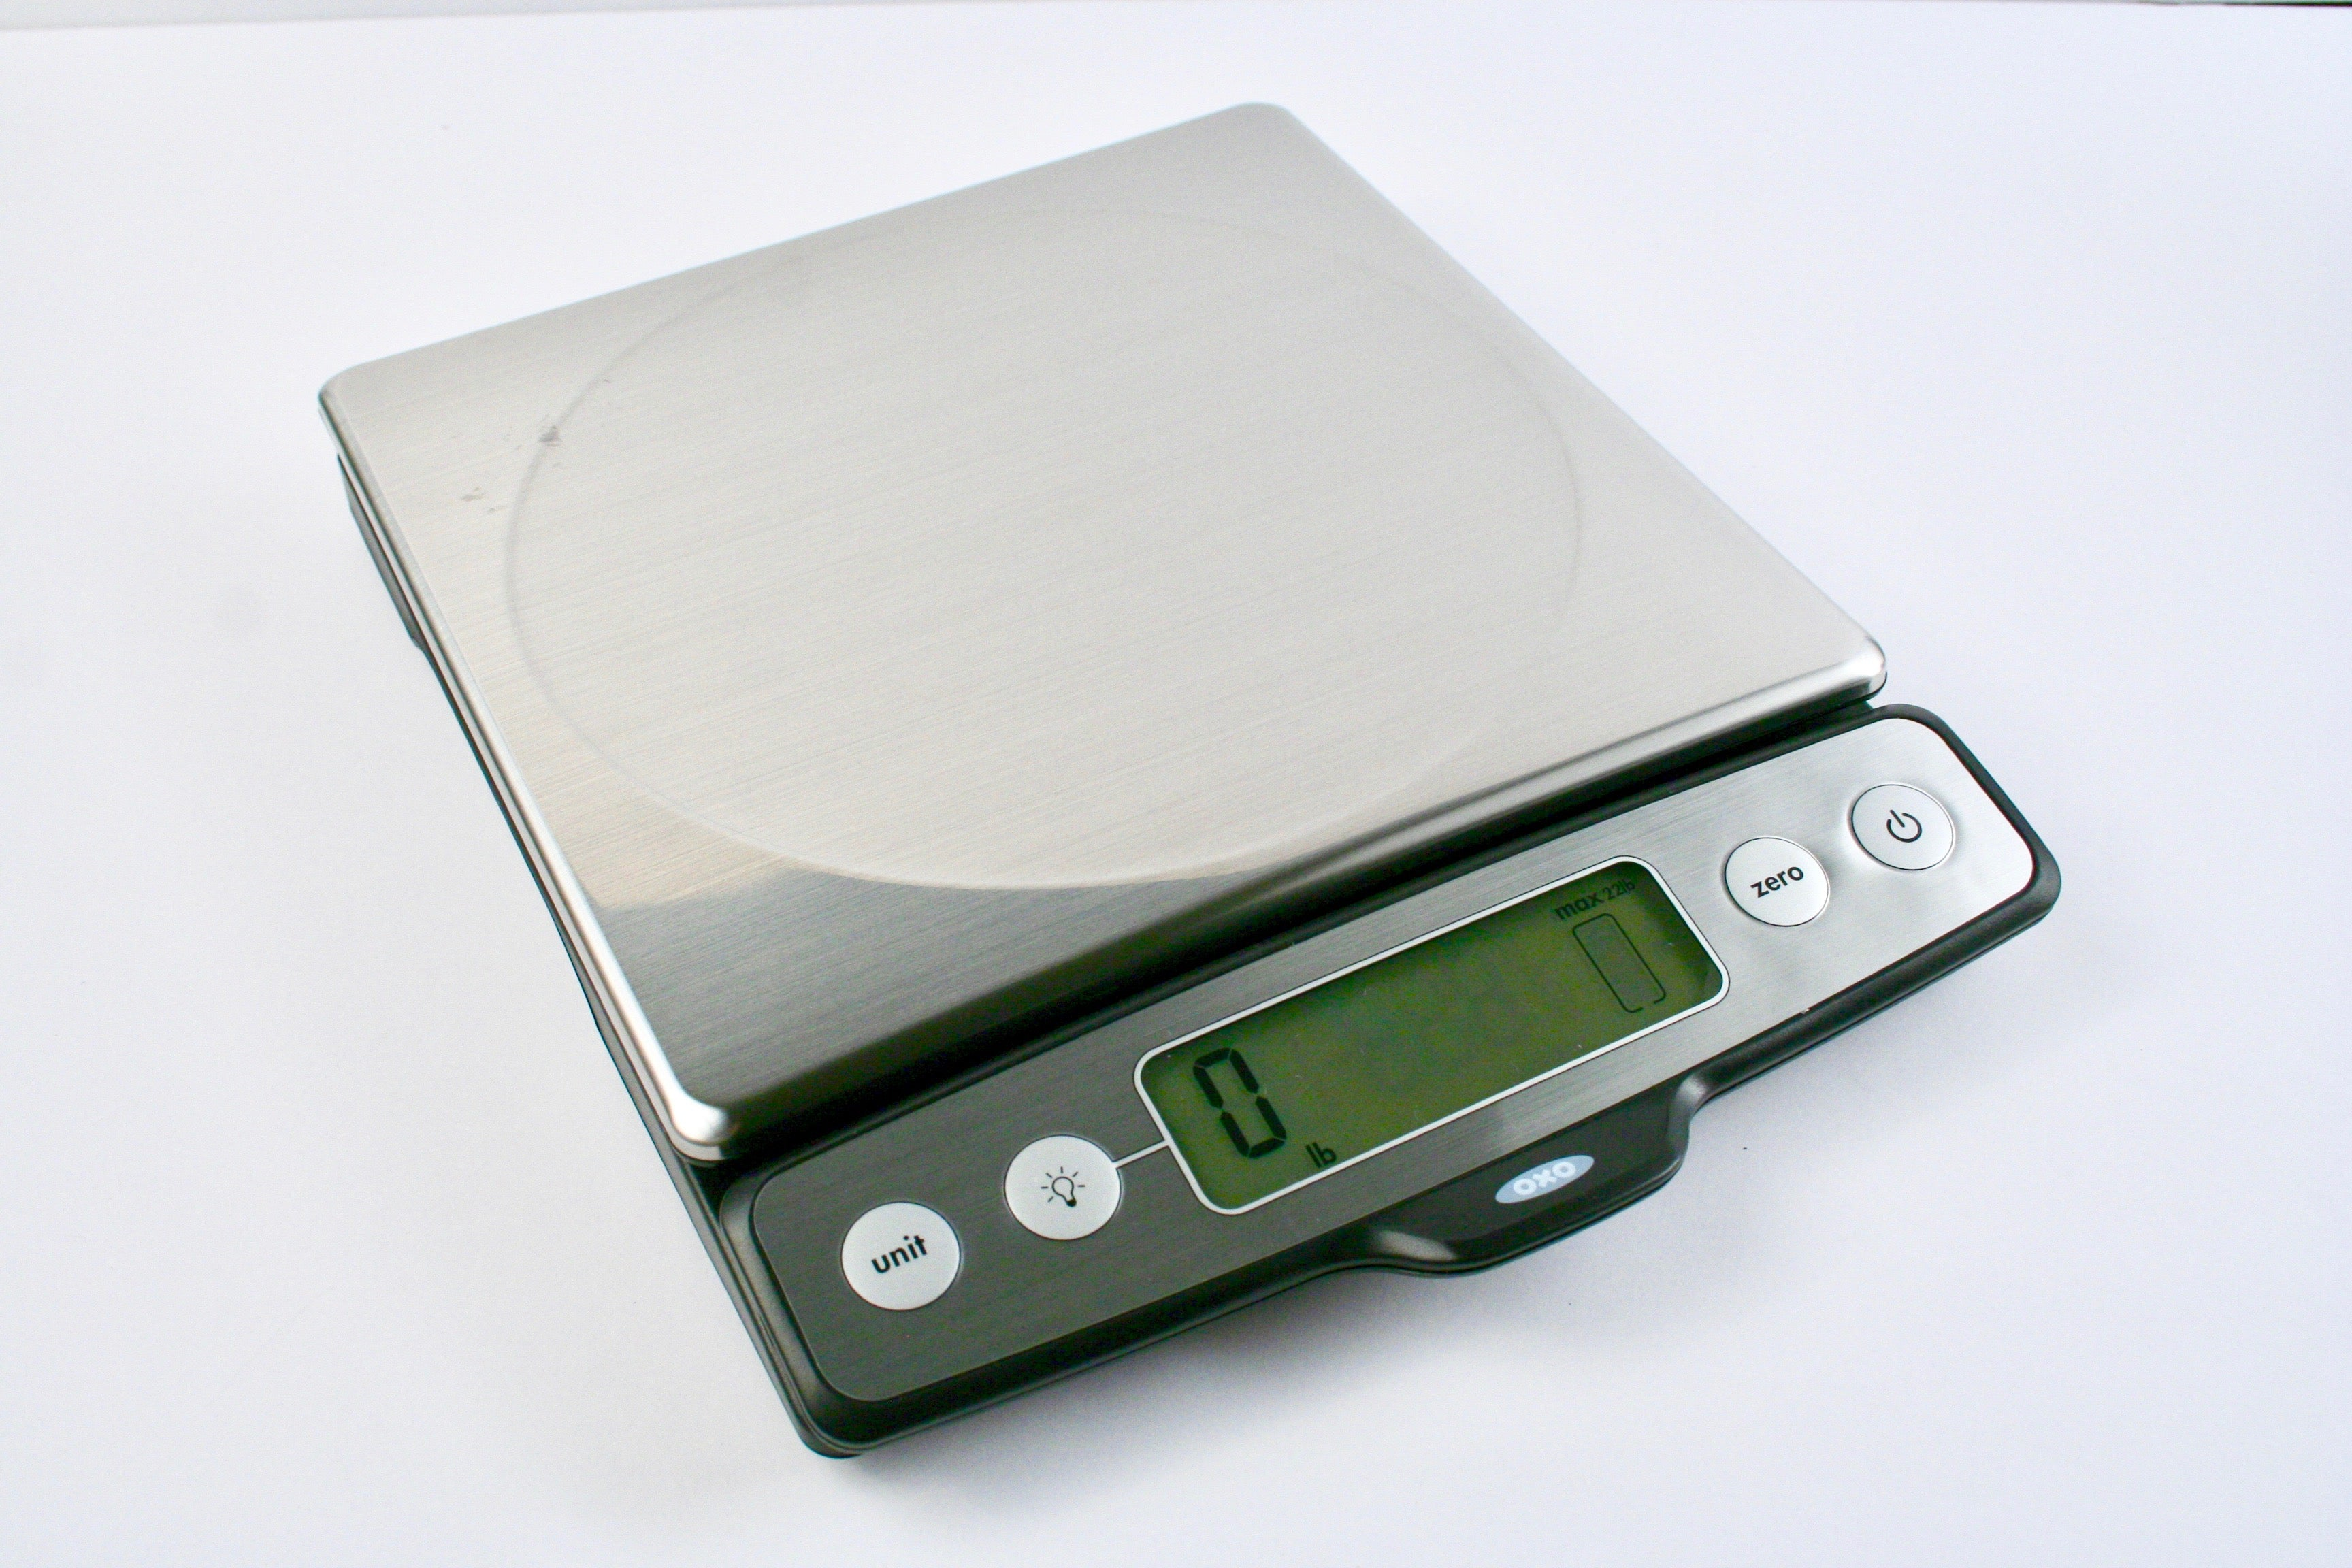 OXO Good Grips 22 lb Stainless Steel Food Scale with Pull Out Display